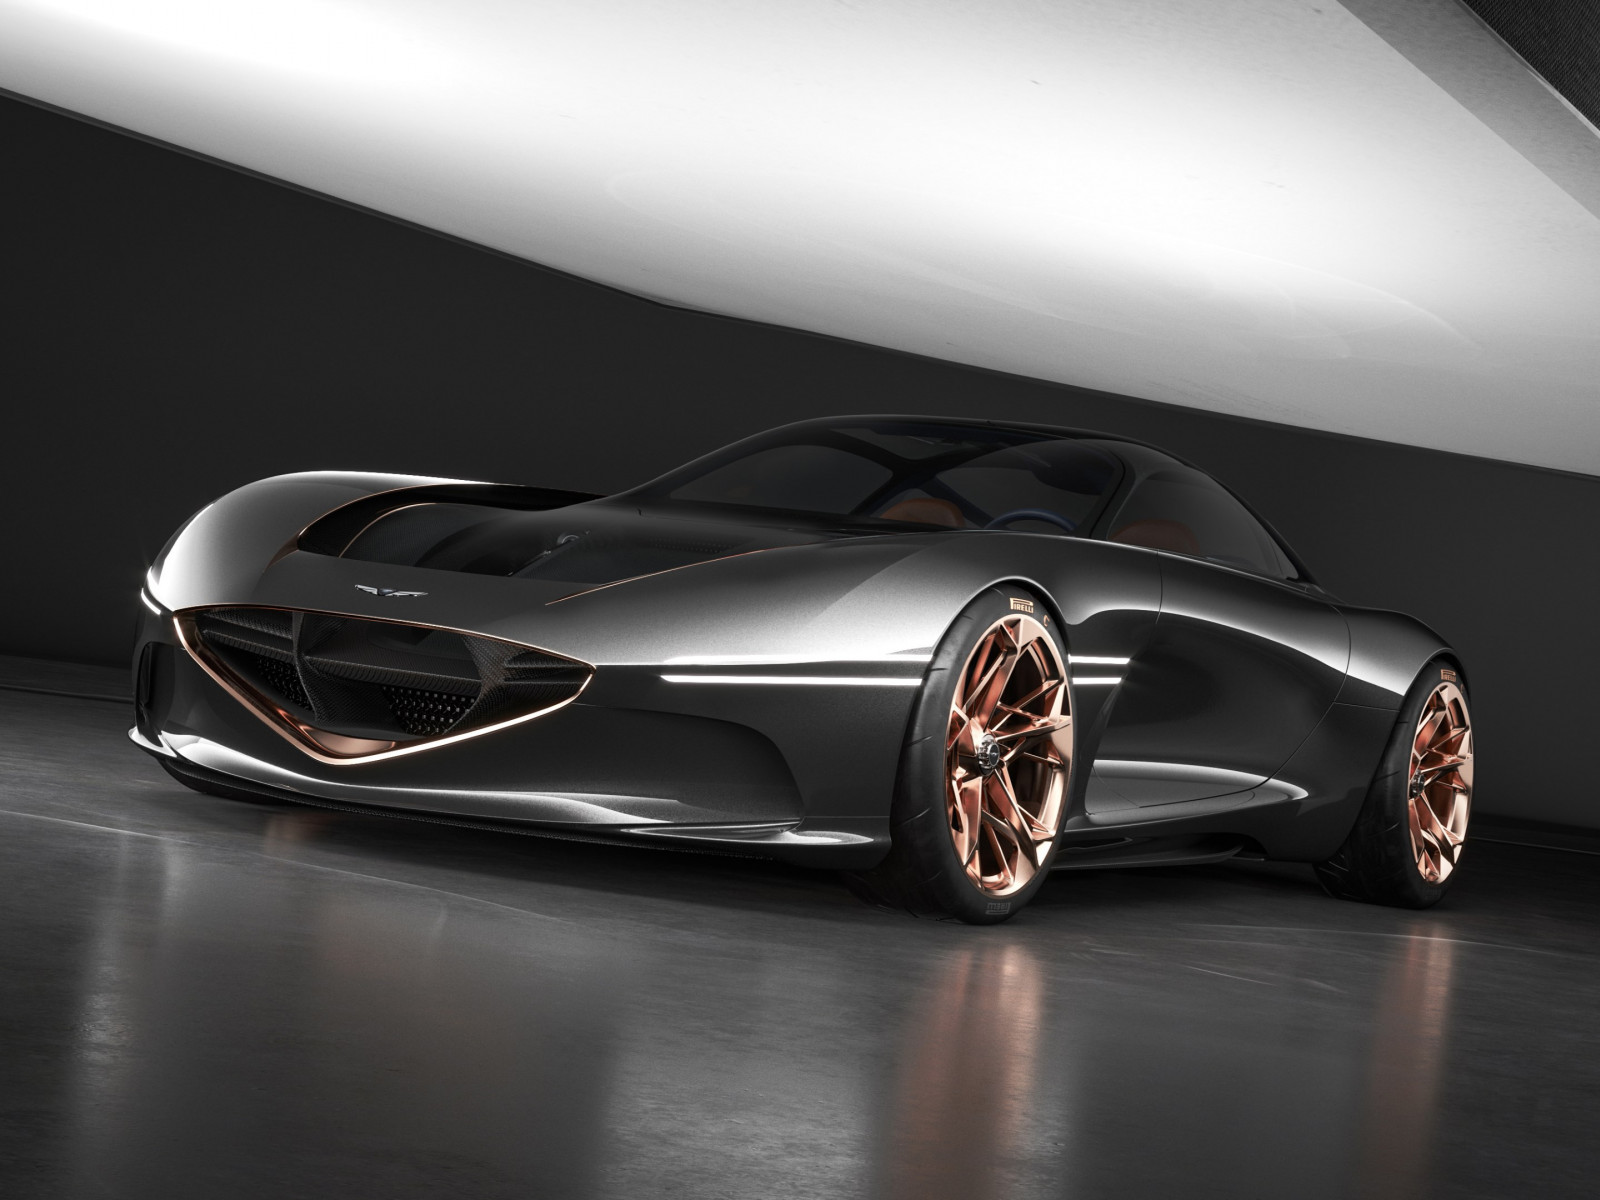 Genesis Essentia concept car wallpaper 1600x1200